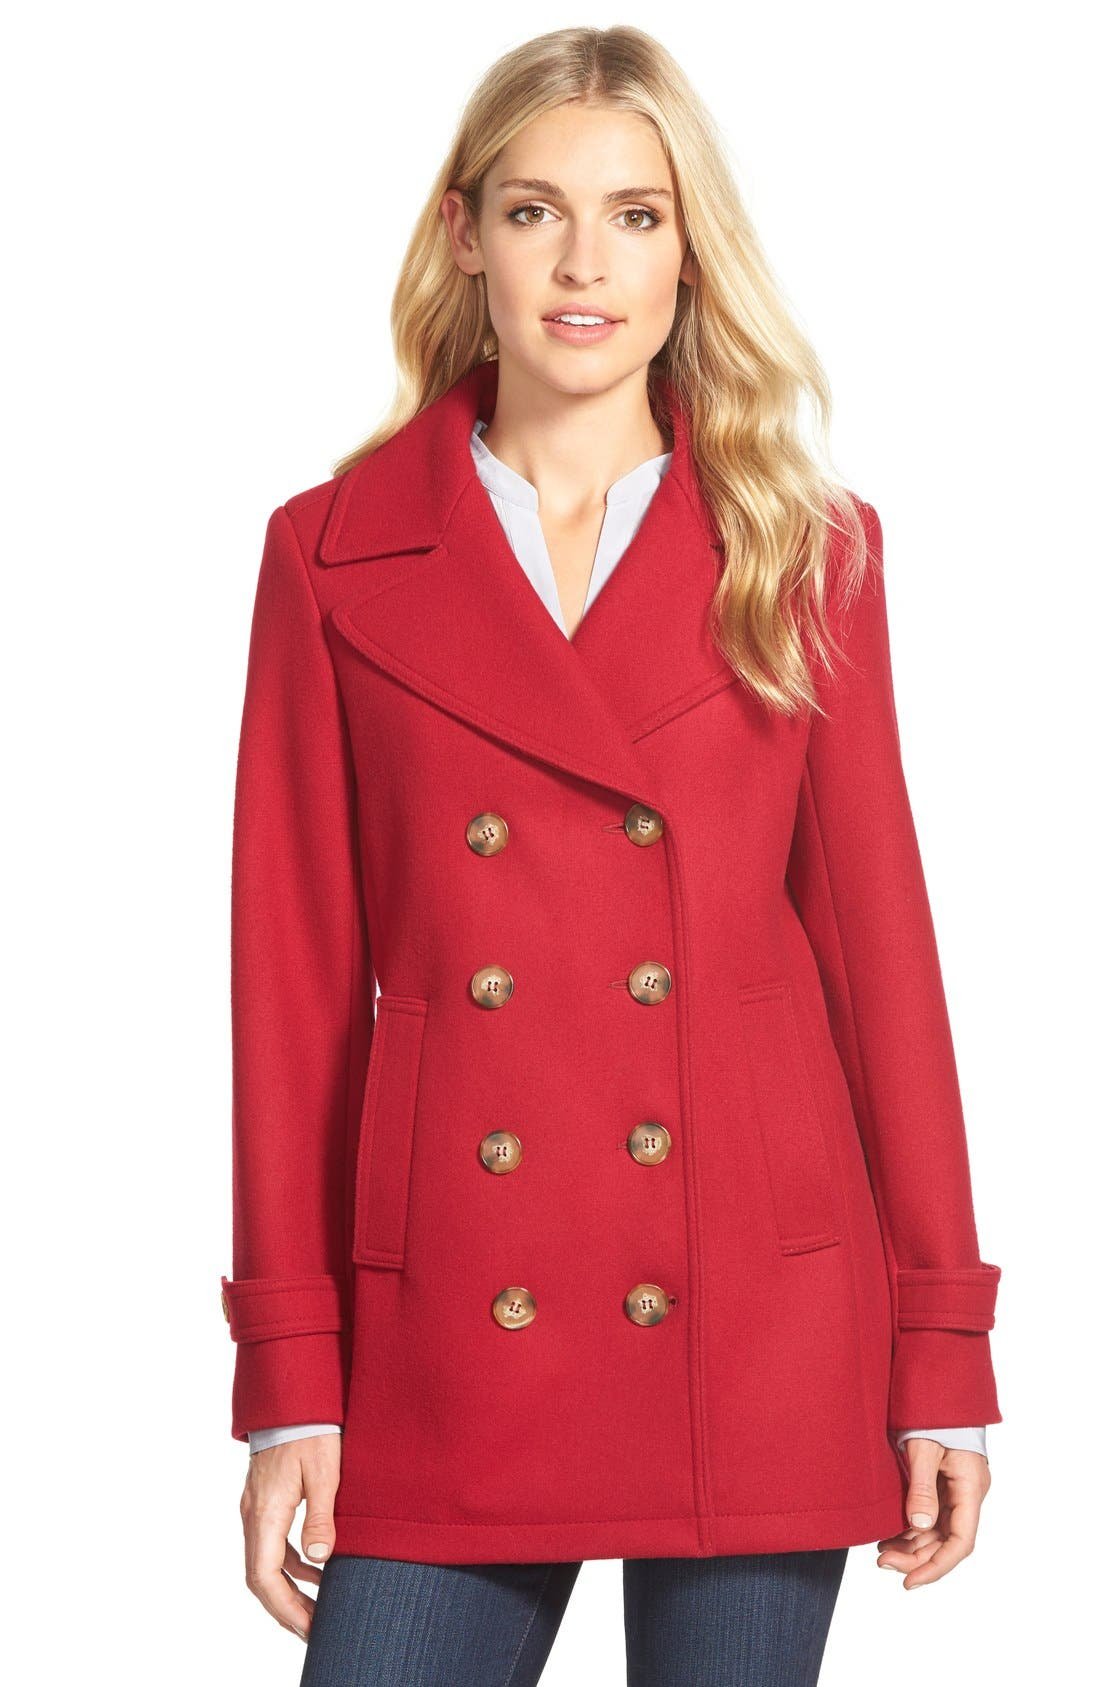 Main Image - Kristen Blake Wool Blend Peacoat (Regular & Petite)